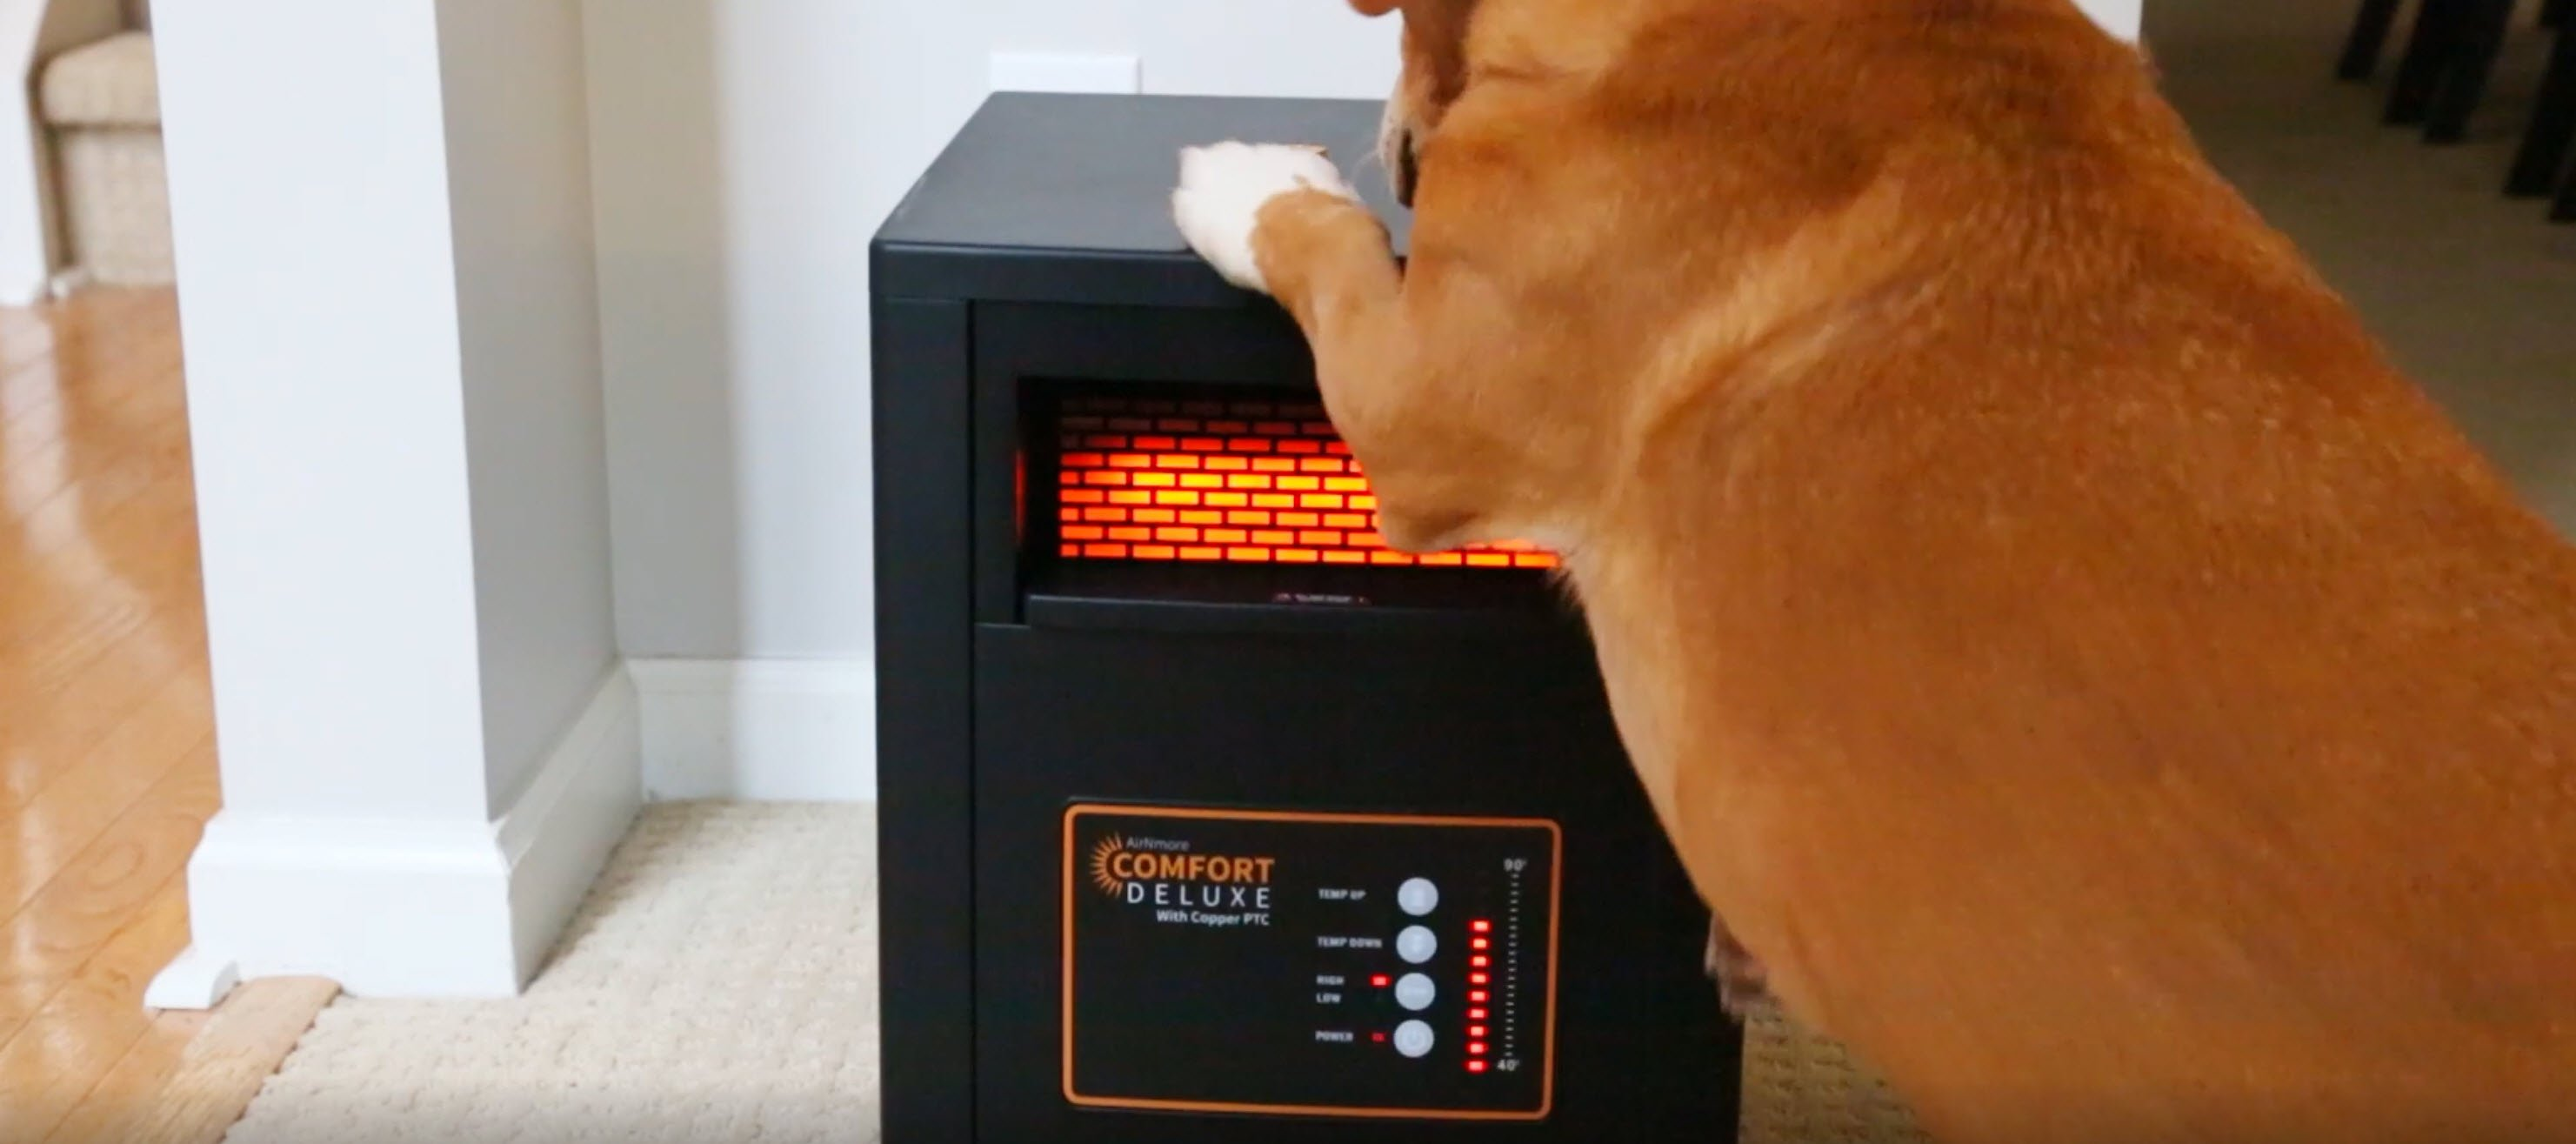 are infrared heaters safe?